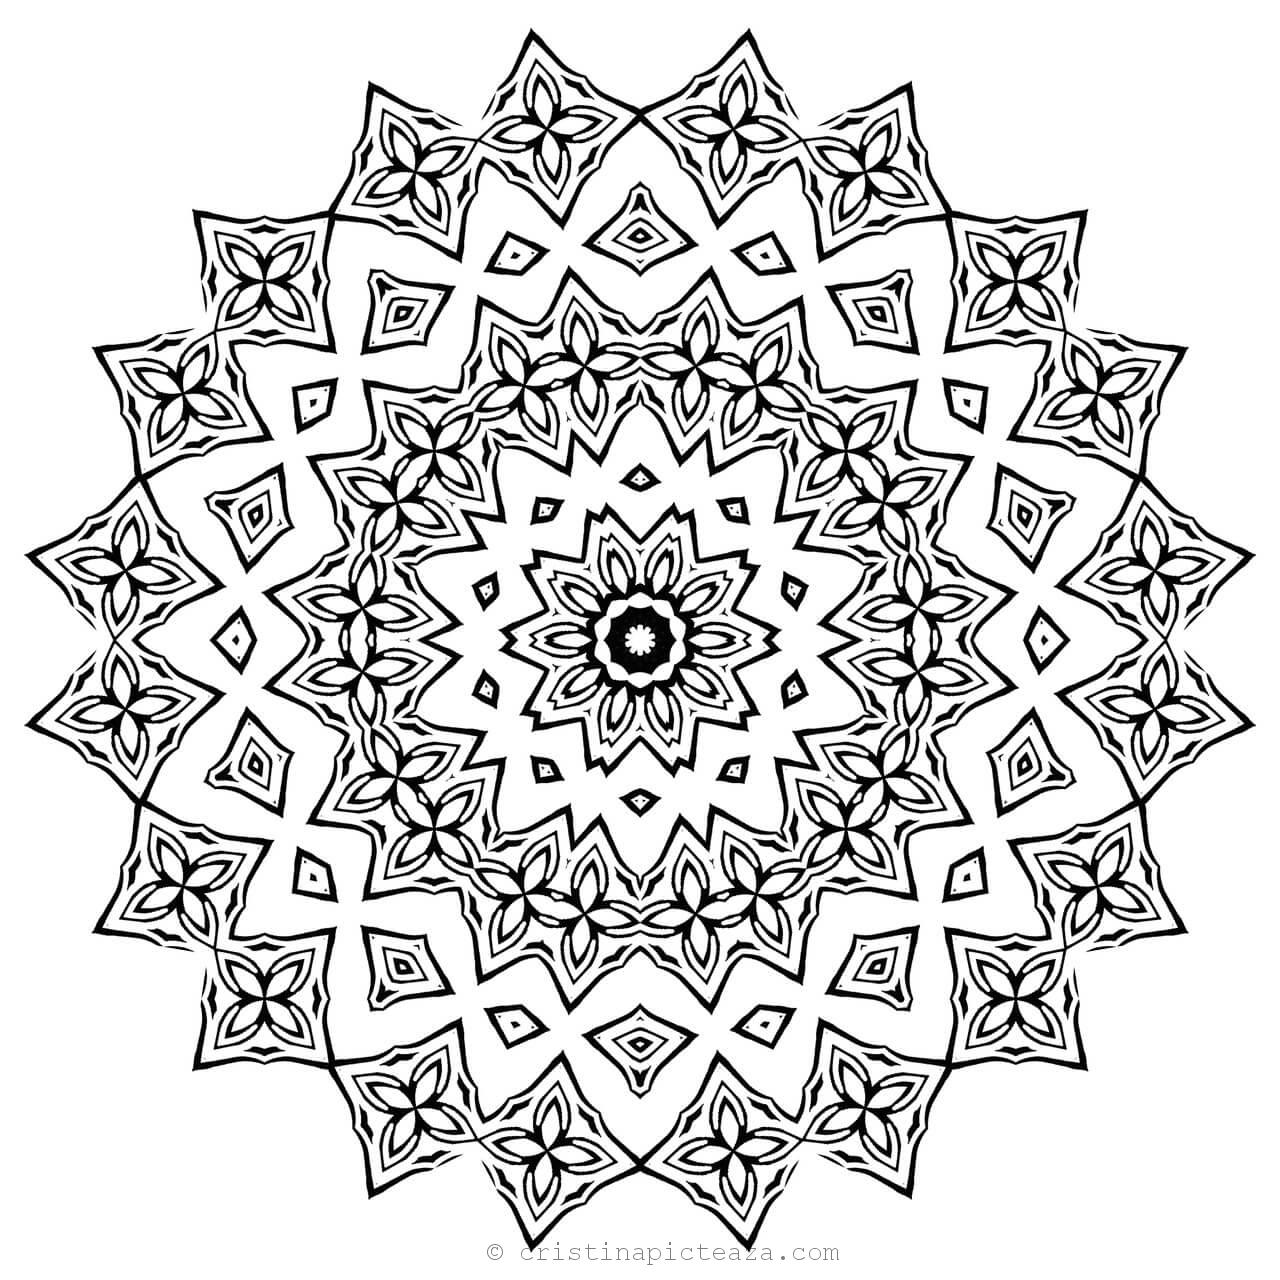 mandalas to color for adults abstract mandala coloring page for adults diy printable mandalas to adults for color